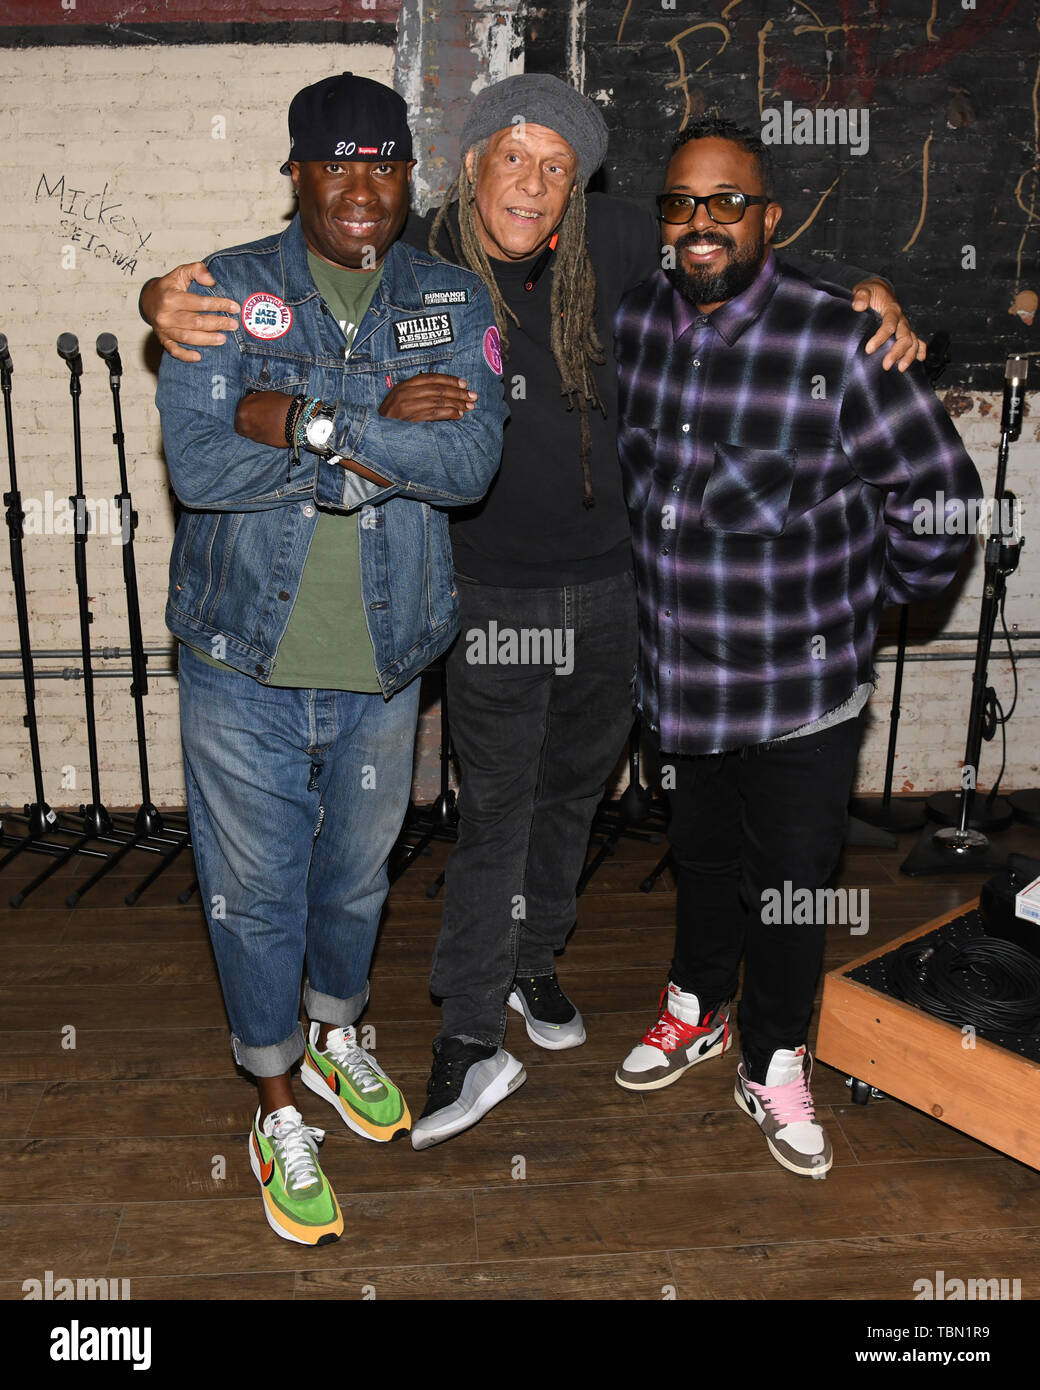 May 31, 2019 - Vince Wilburn Jr., Joe Bloacker and Erin Davis attends the Miles Davis 'Birth Of The Cool' listening event for the 2 LP set at Gold-Diggers for Aquarium Drunkard Los Angeles, California. (Credit Image: © Billy Bennight/ZUMA Wire) - Stock Image